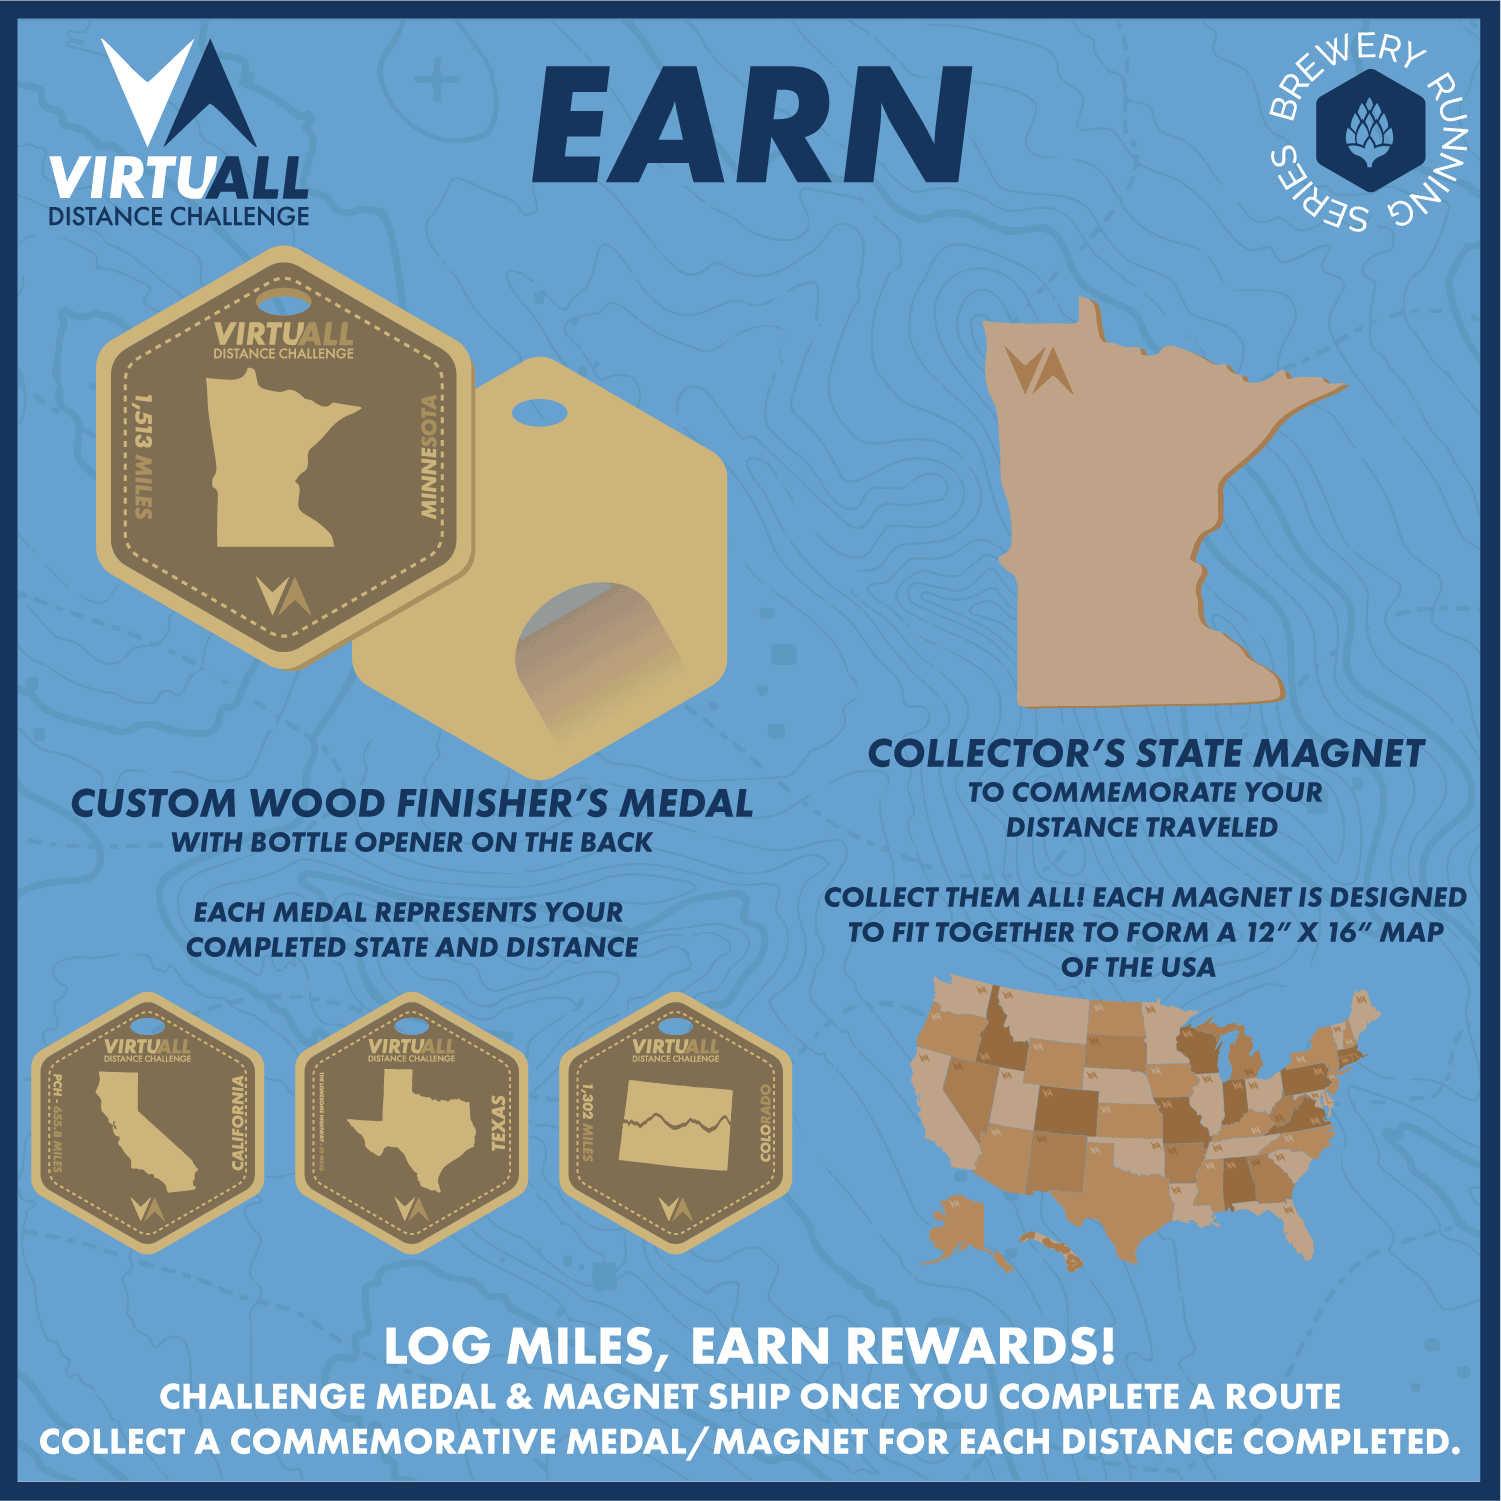 Virtuall Distance Challenge _EARN